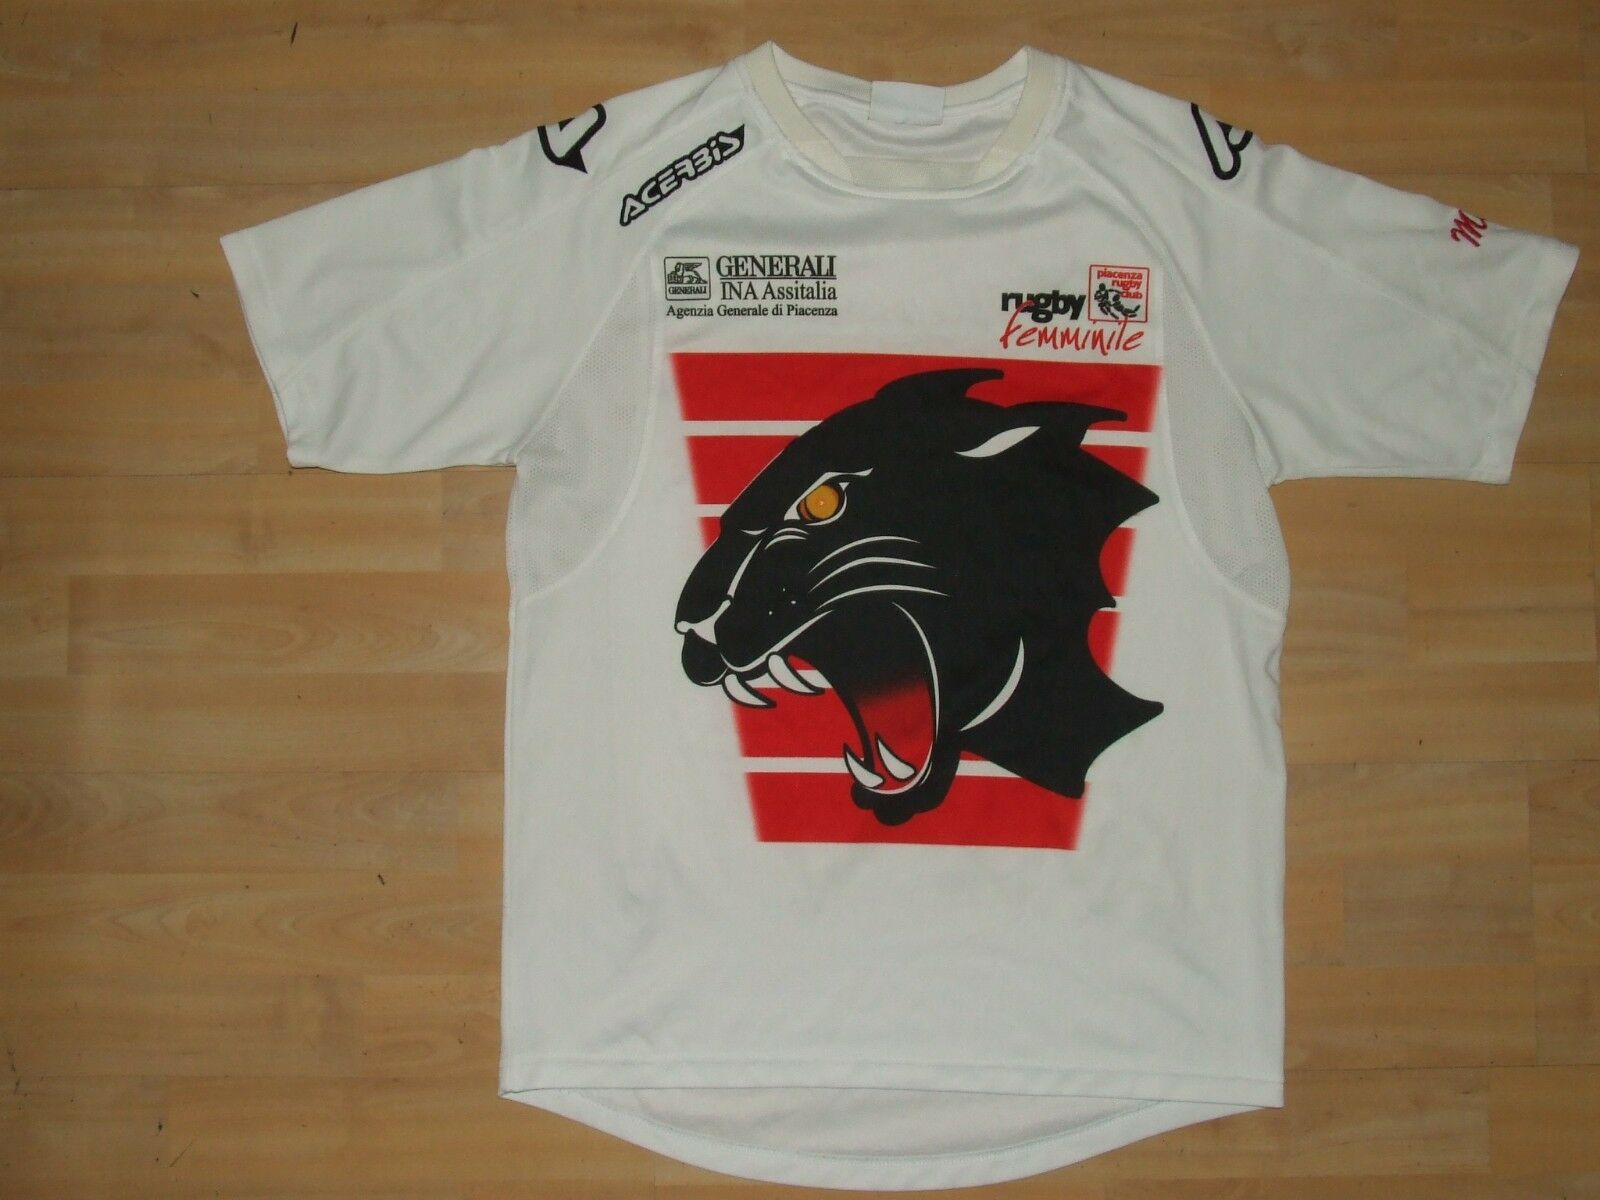 SHIRT TRIKOT MAILLOT RUGBY SPORT PIACENZA WOMEN n °4 size M